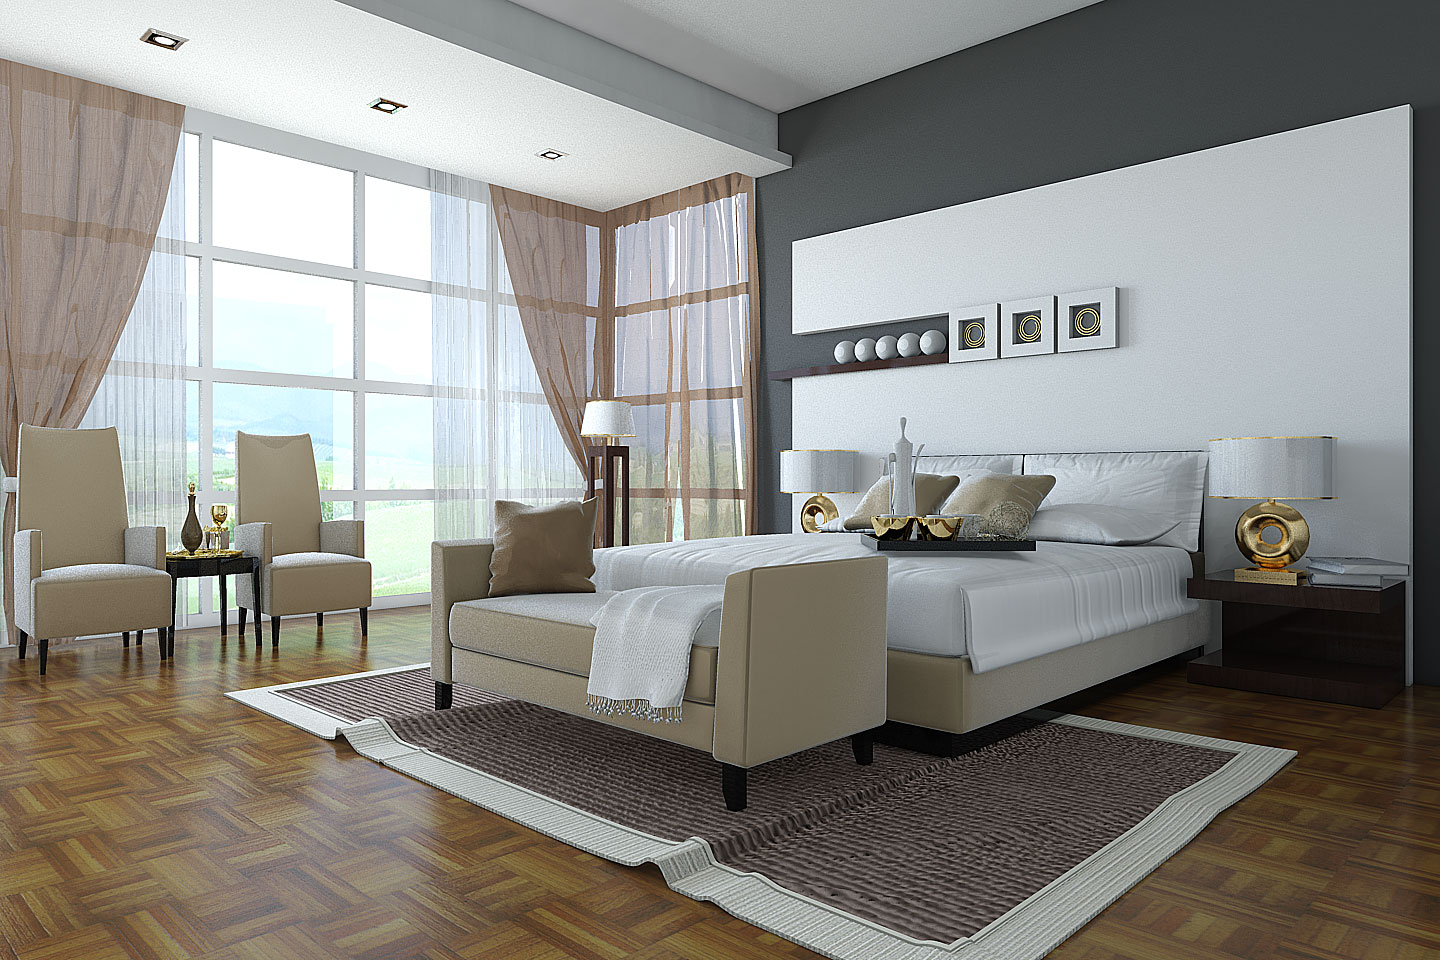 Bedrooms Designs Simple Of Classic Bedroom Design Photo